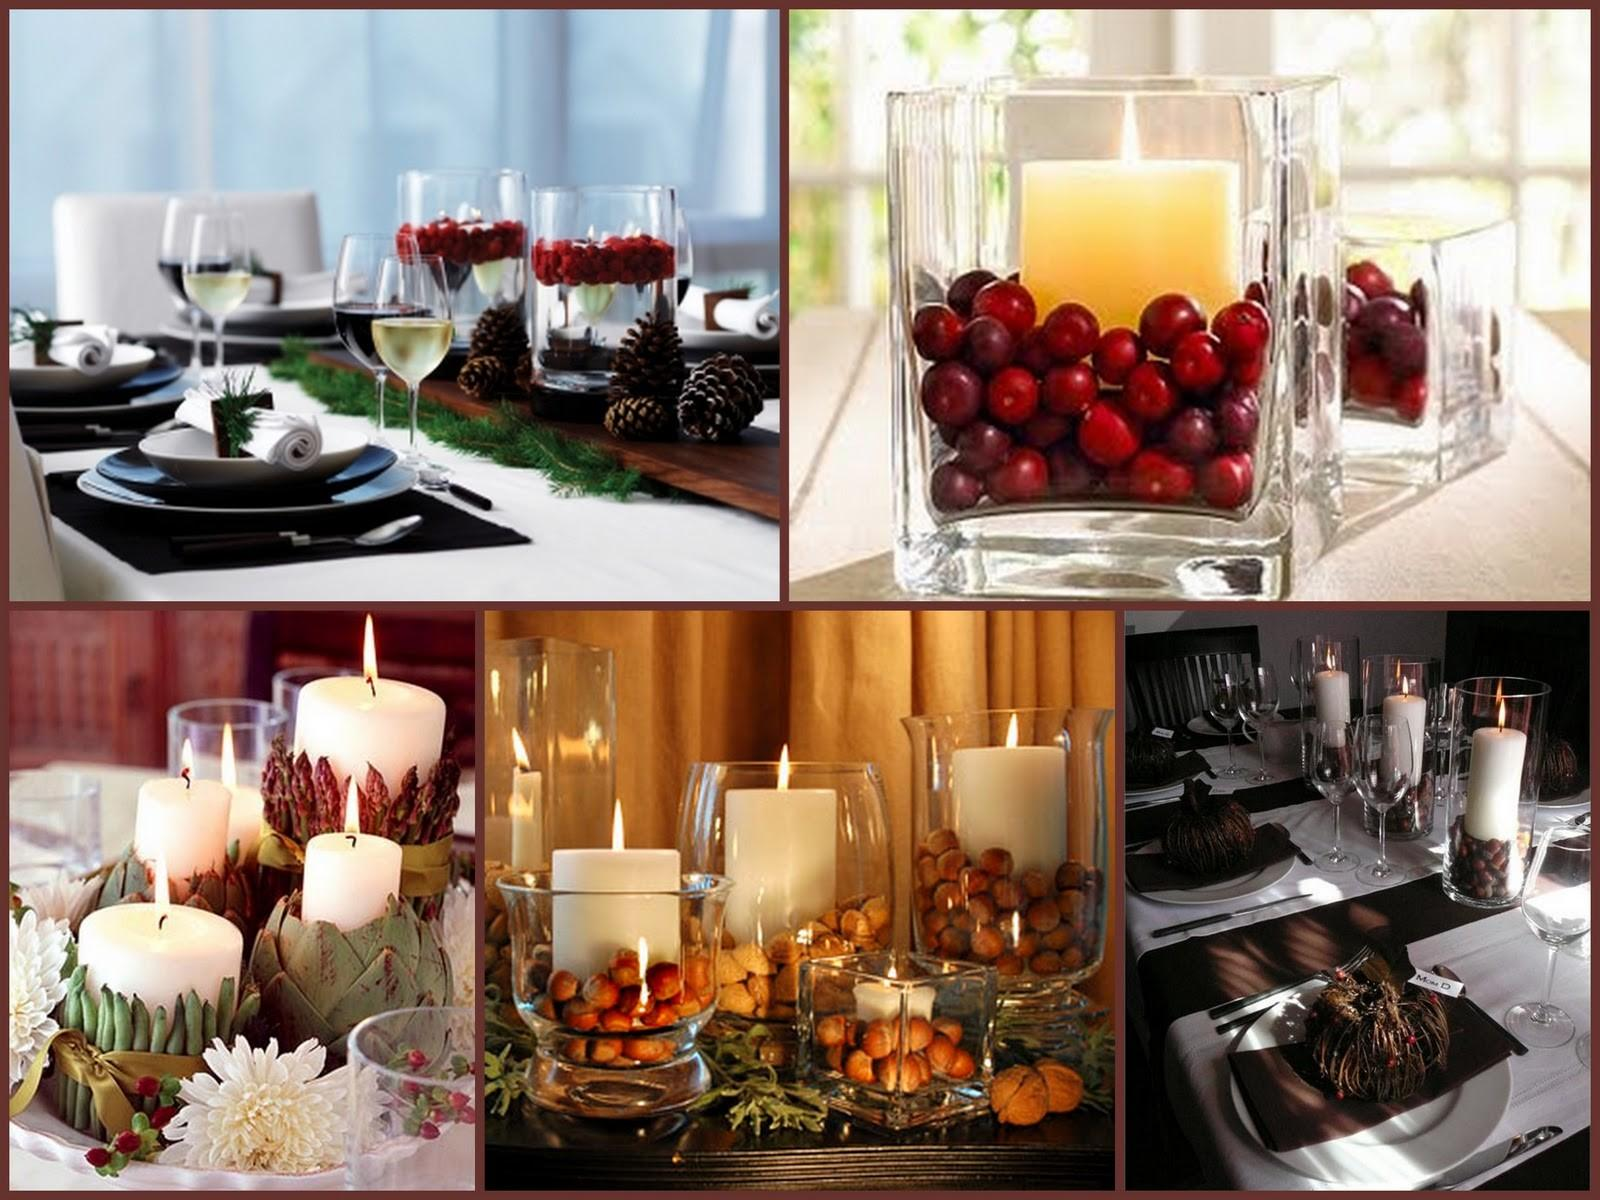 Trendee Flowers Designs Diy Candle Centerpiece Decor